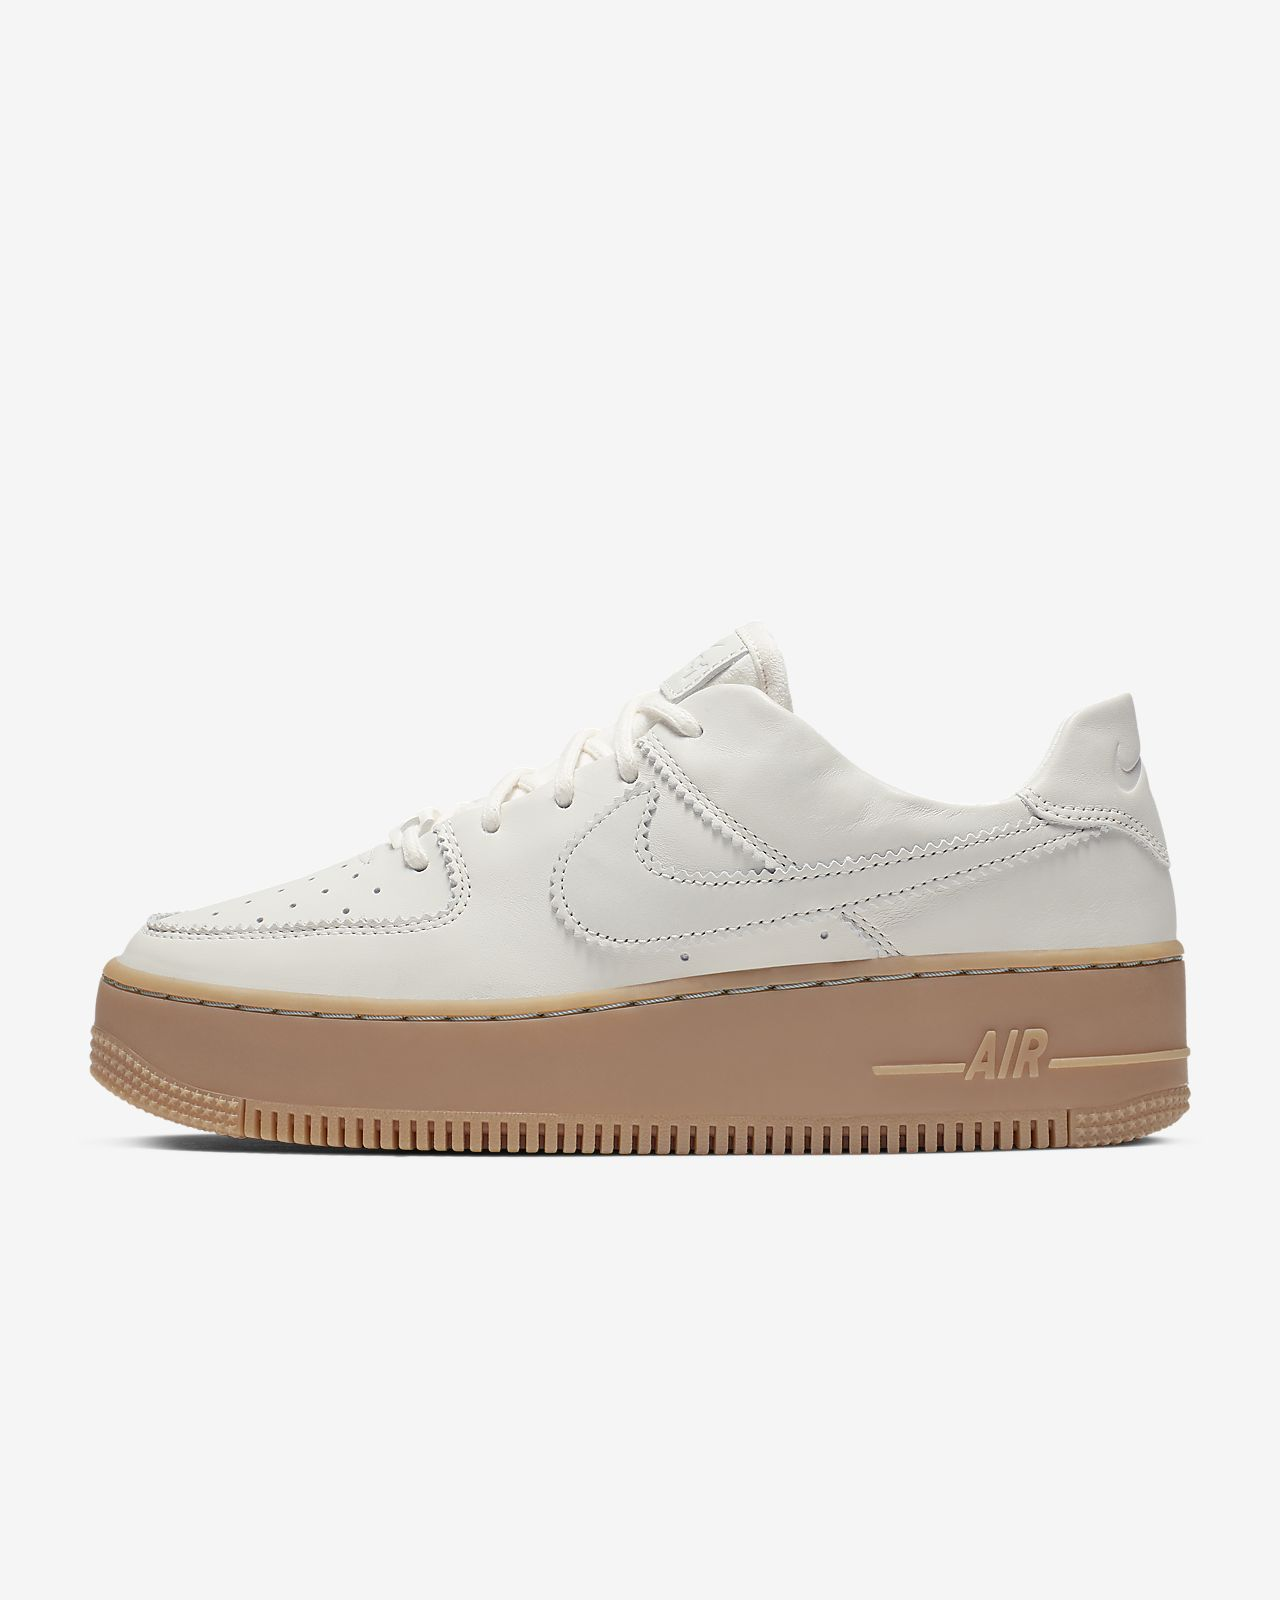 9592bbaf0c1d Nike Air Force 1 Sage Low LX Women s Shoe. Nike.com